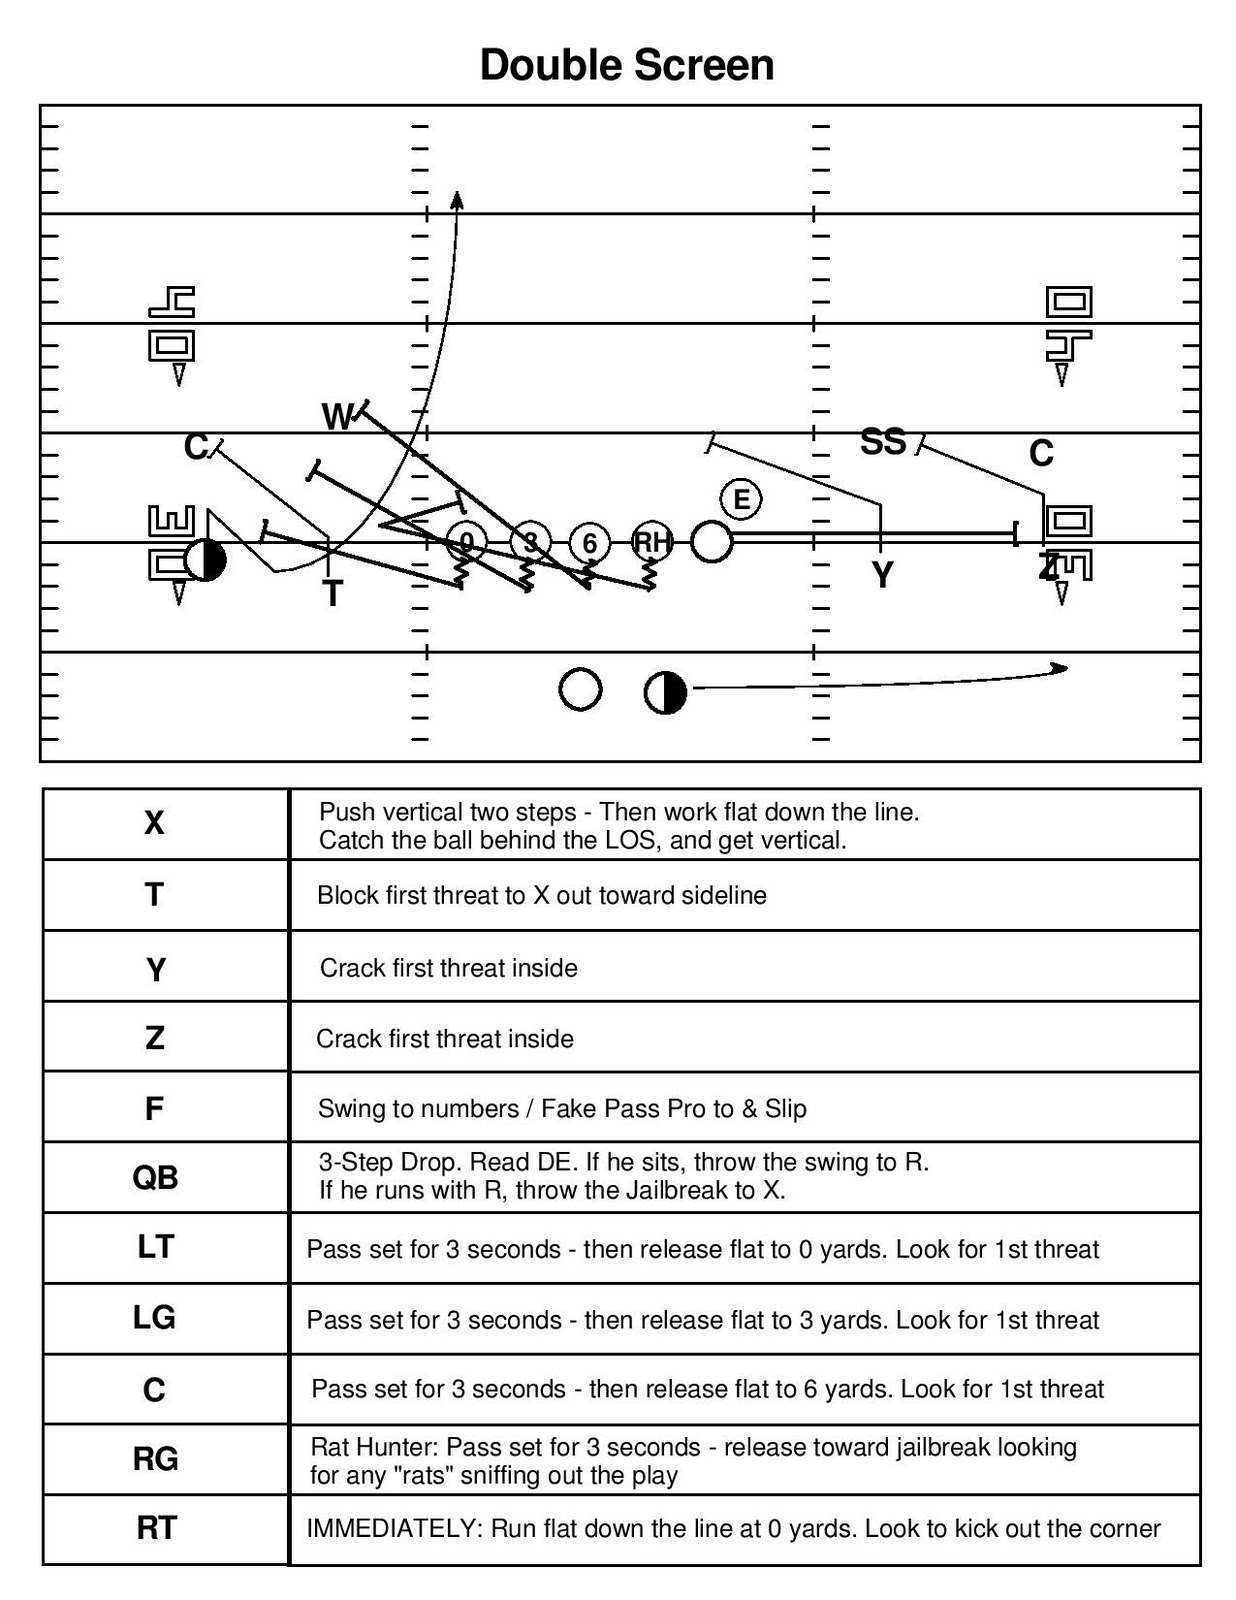 Football Play Template | Iteach Icoach Iblog Packaging Plays The Double Screen